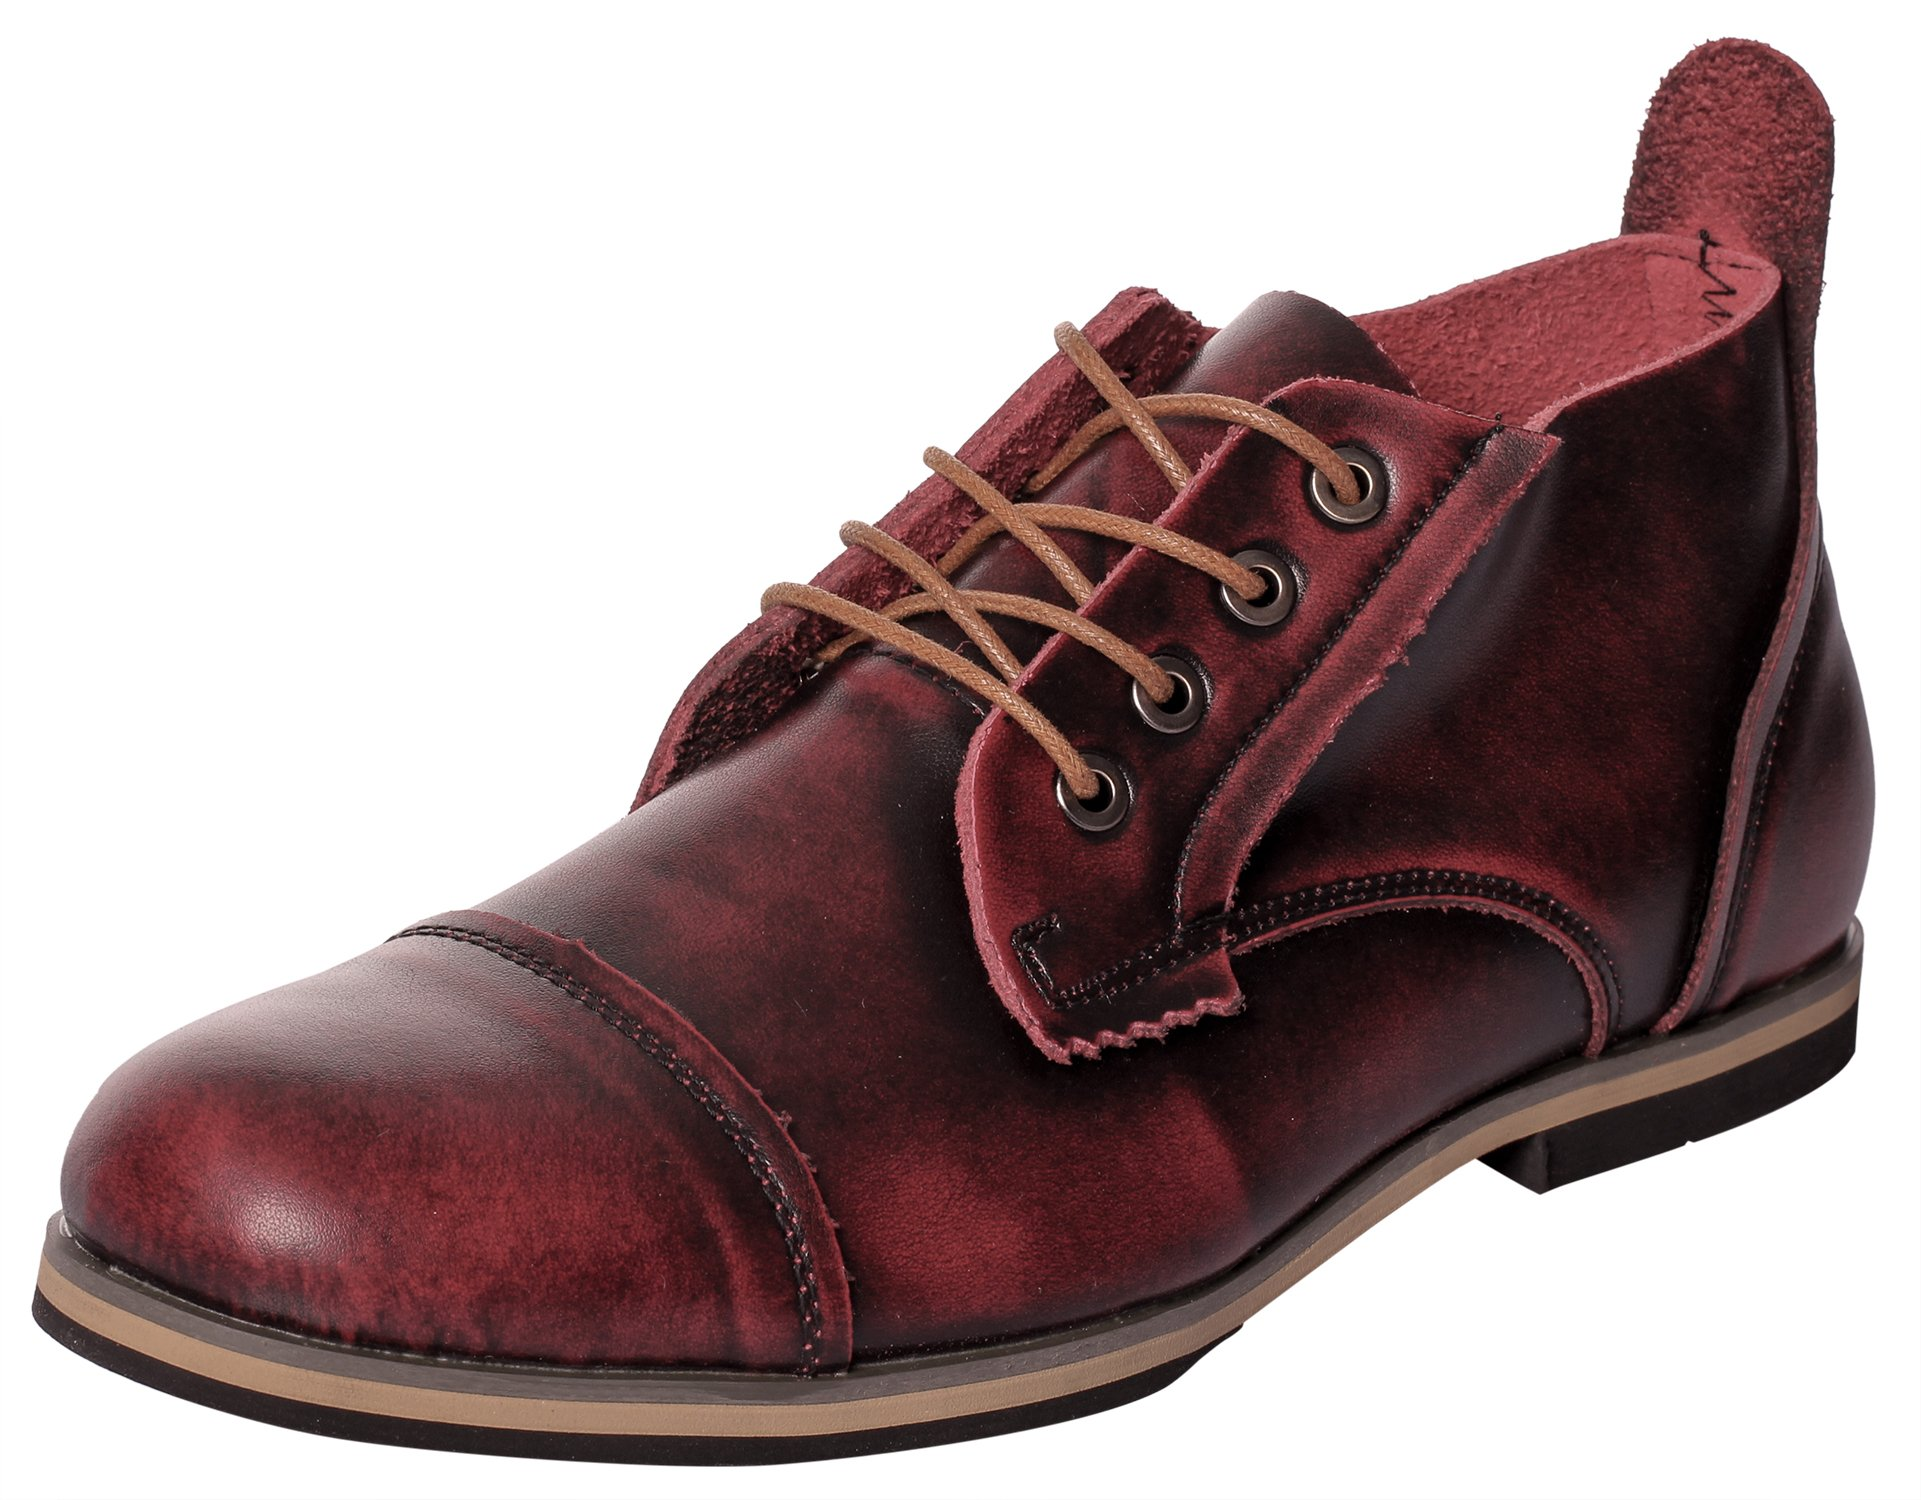 UJoowalk Mens Fashion Leather Lace-Up Cap Toe Dress Original Ankle Desert Classic Chukka Boots (10D(M) US, Burgundy)